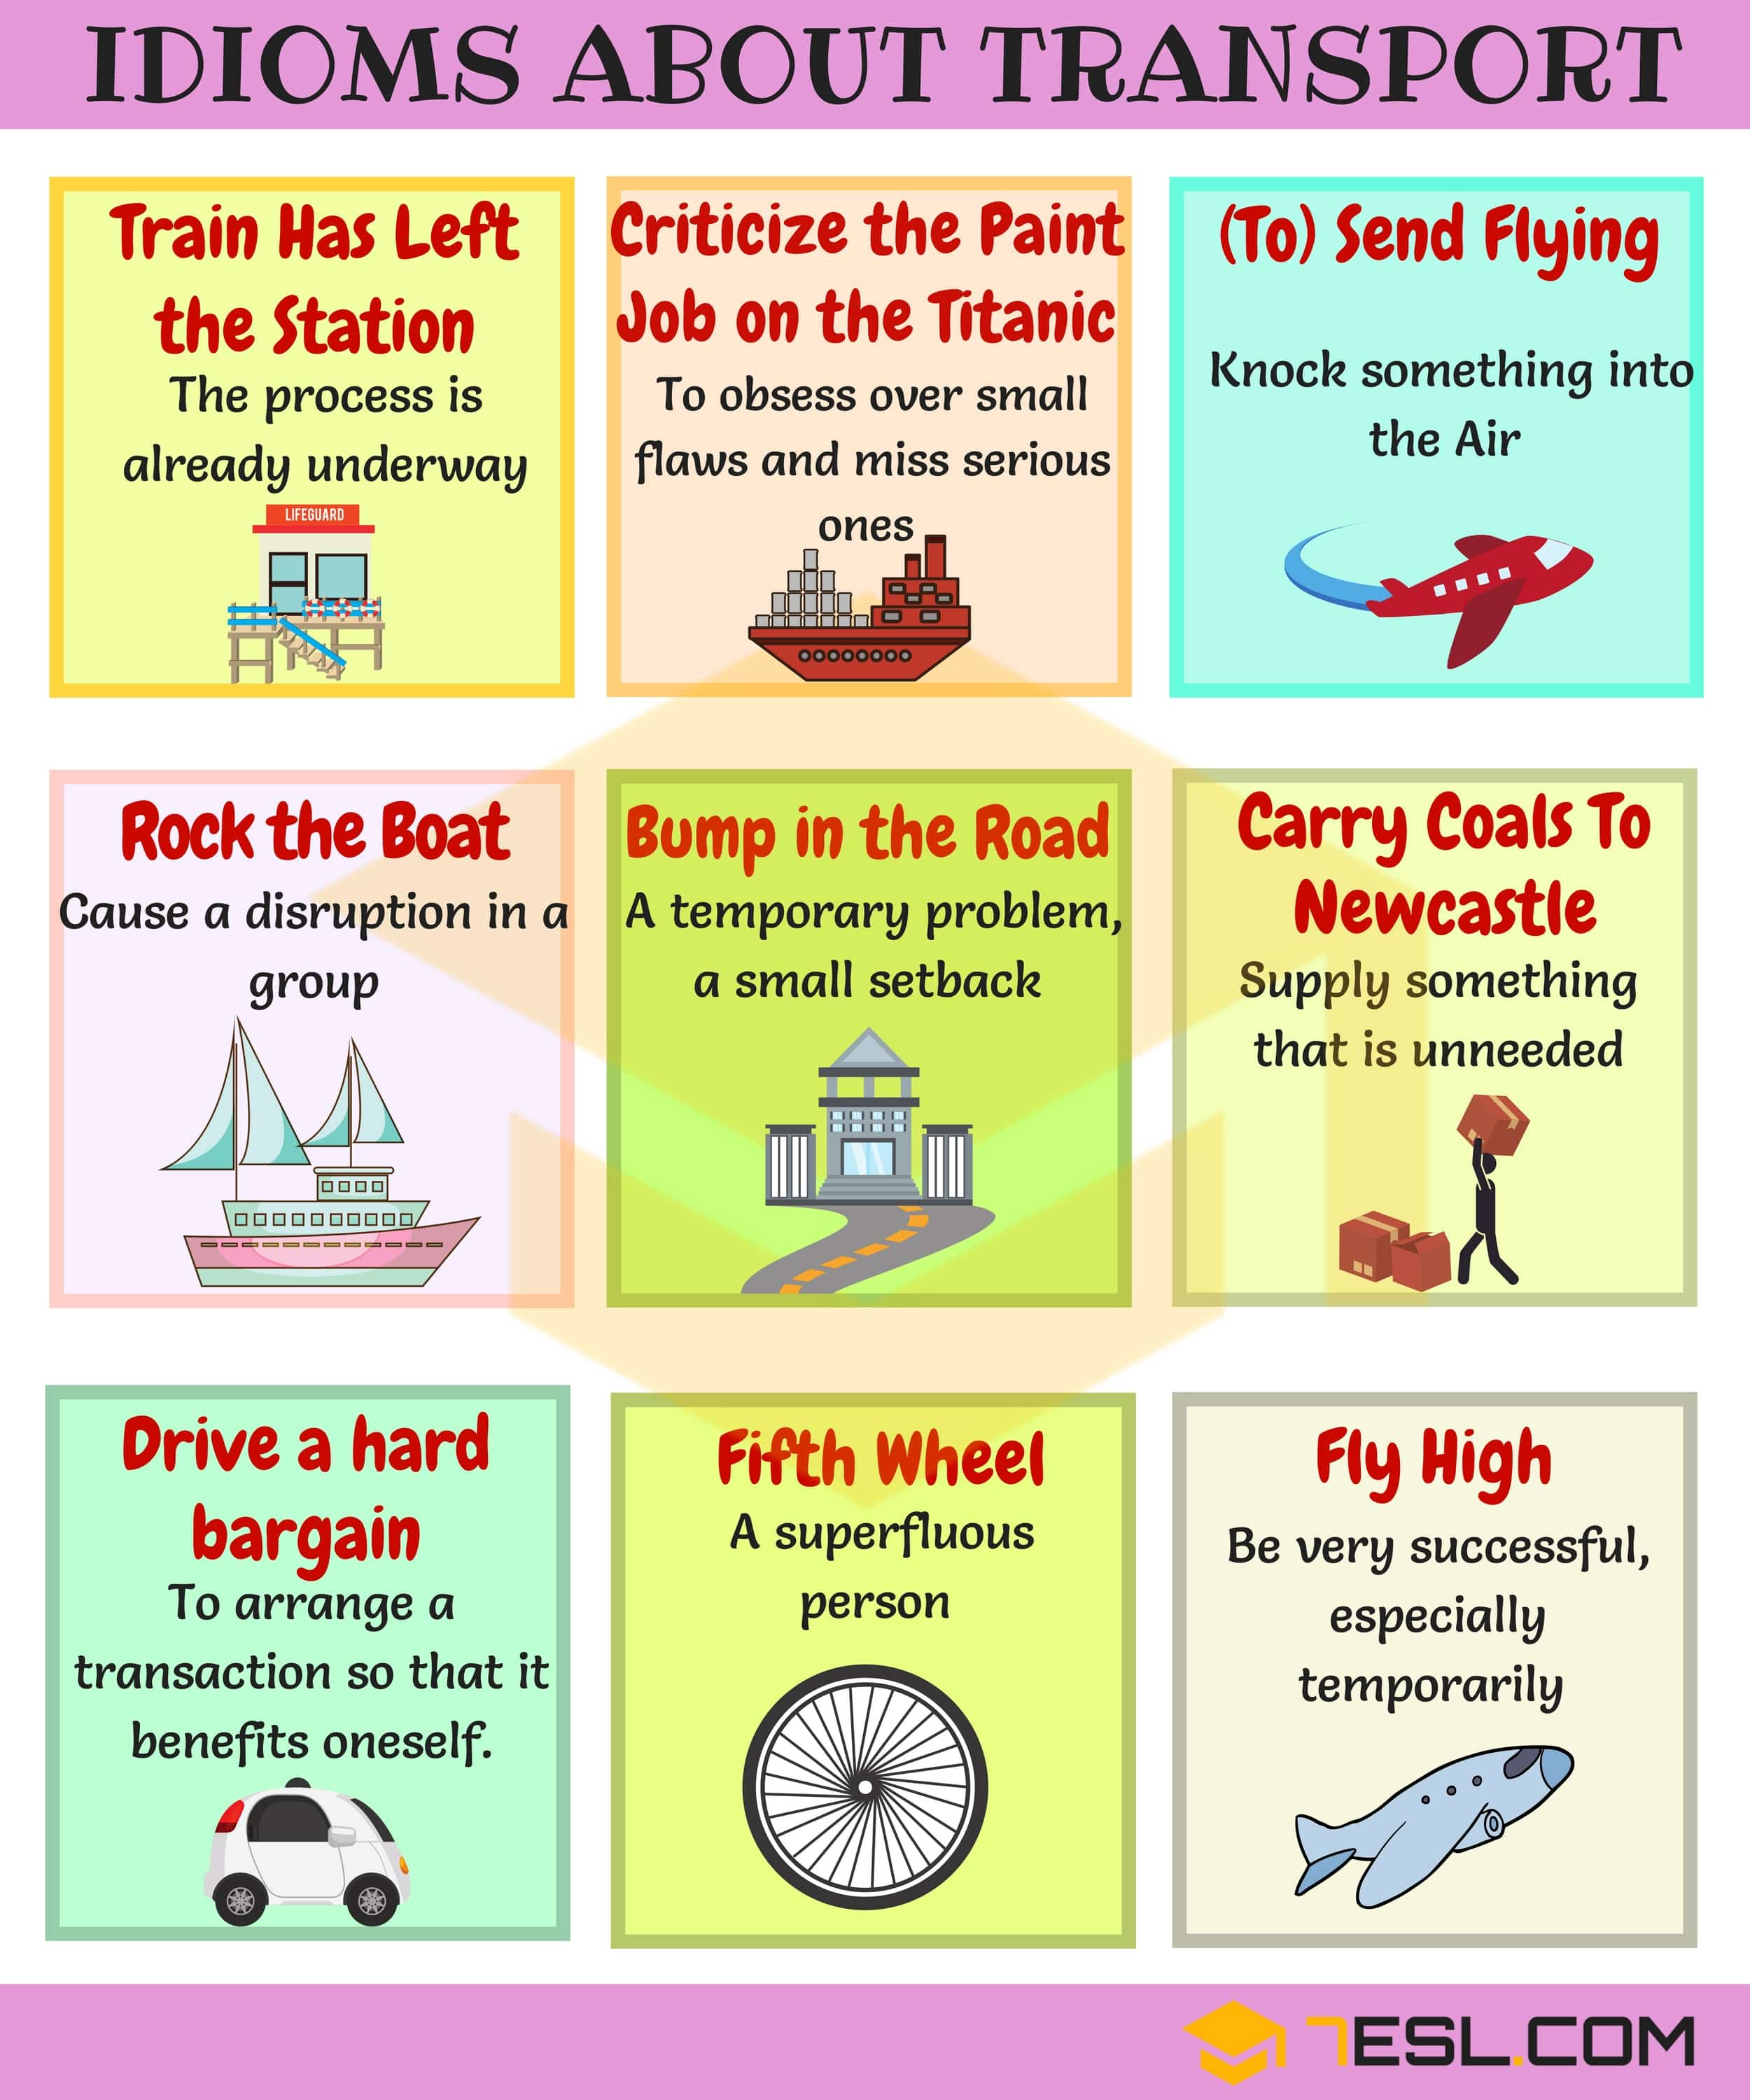 TRAVEL Idioms: 60+ Useful Transport and Travel Idioms in English